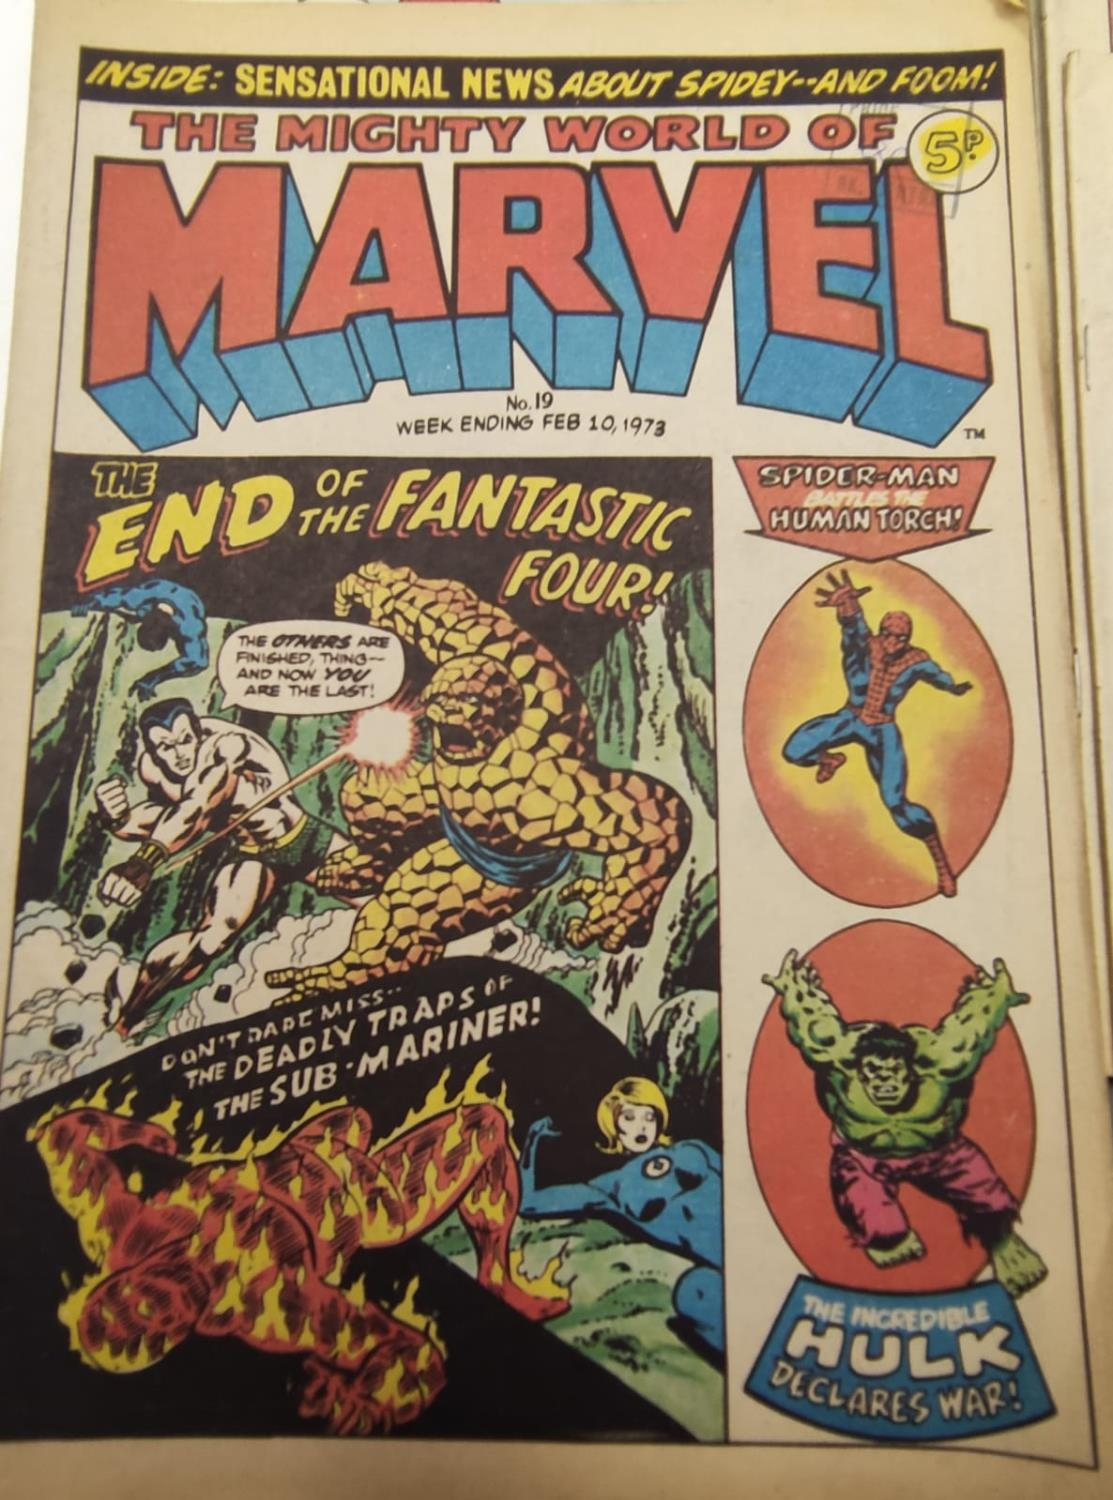 20 editions of mixed Vintage Marvel Comics. - Image 33 of 56